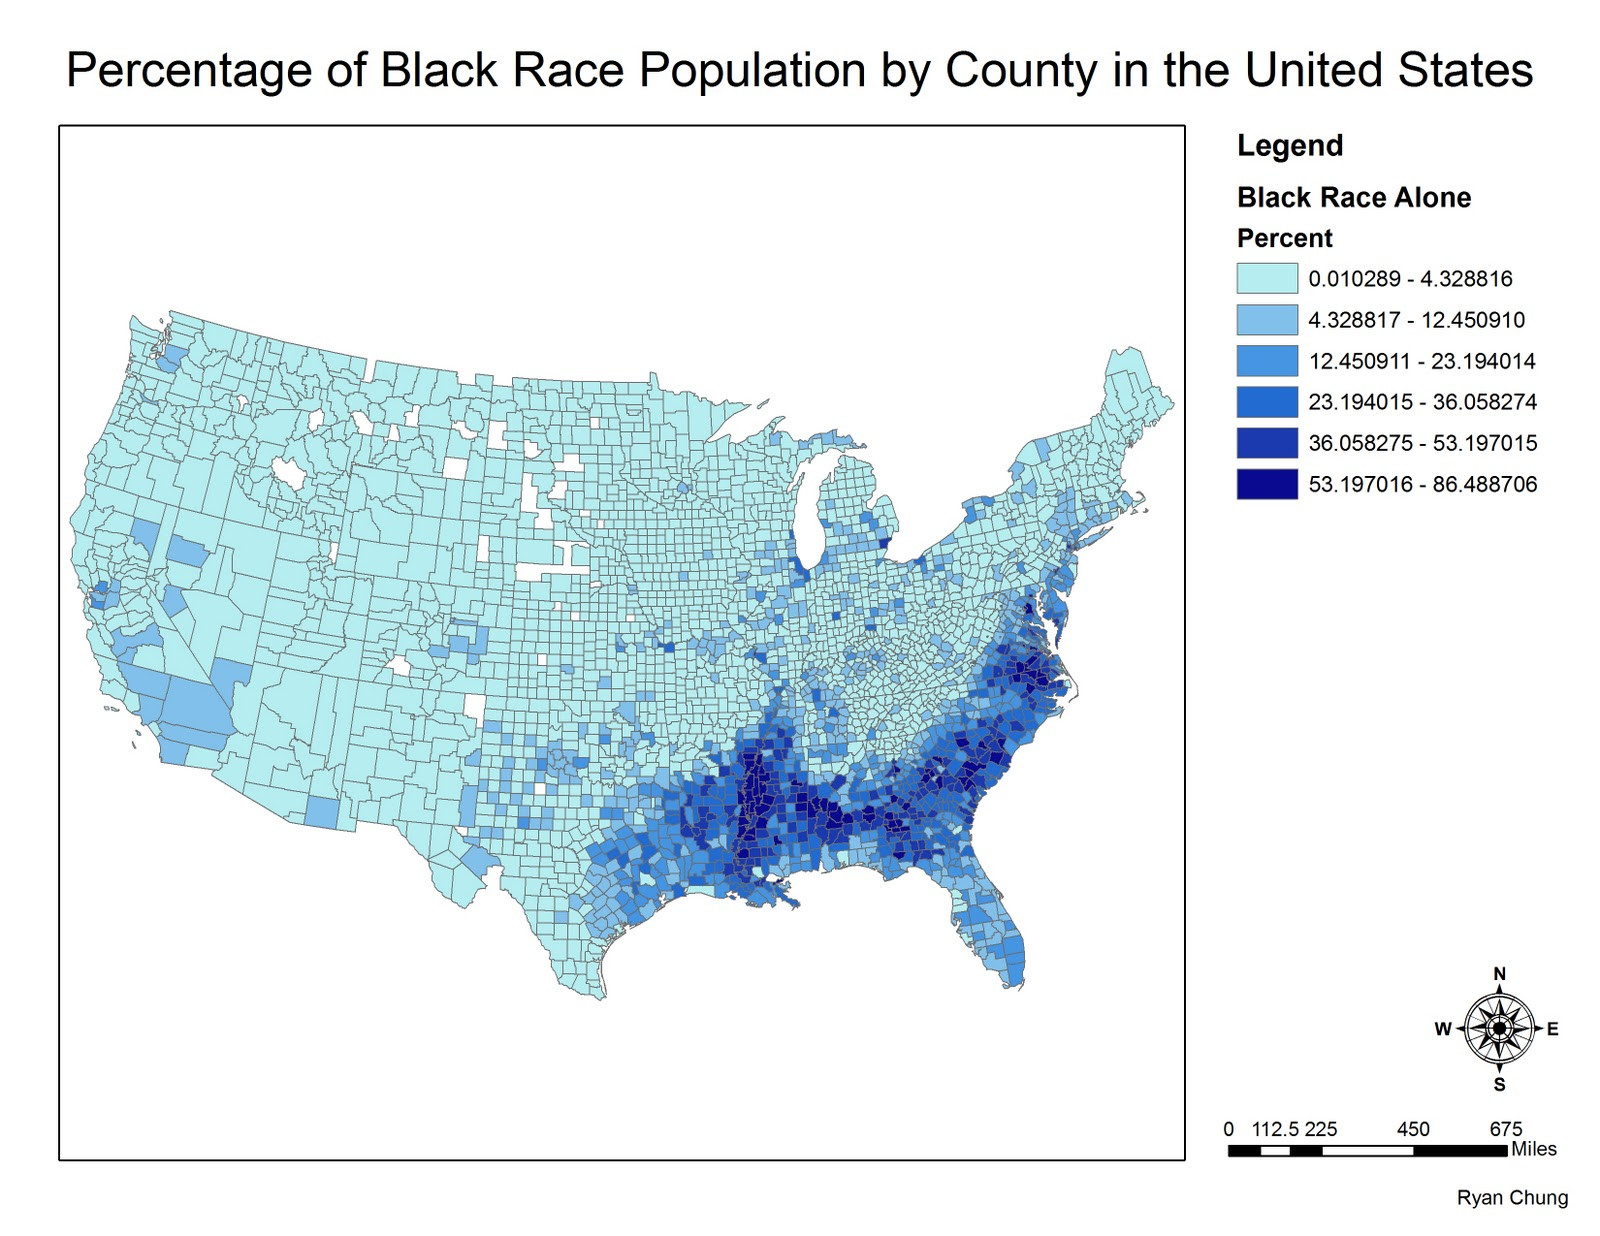 53 197016 to 86 488706 inferring that those areas shaded in a very dark green will have a very significant proportion of african american inhabitants